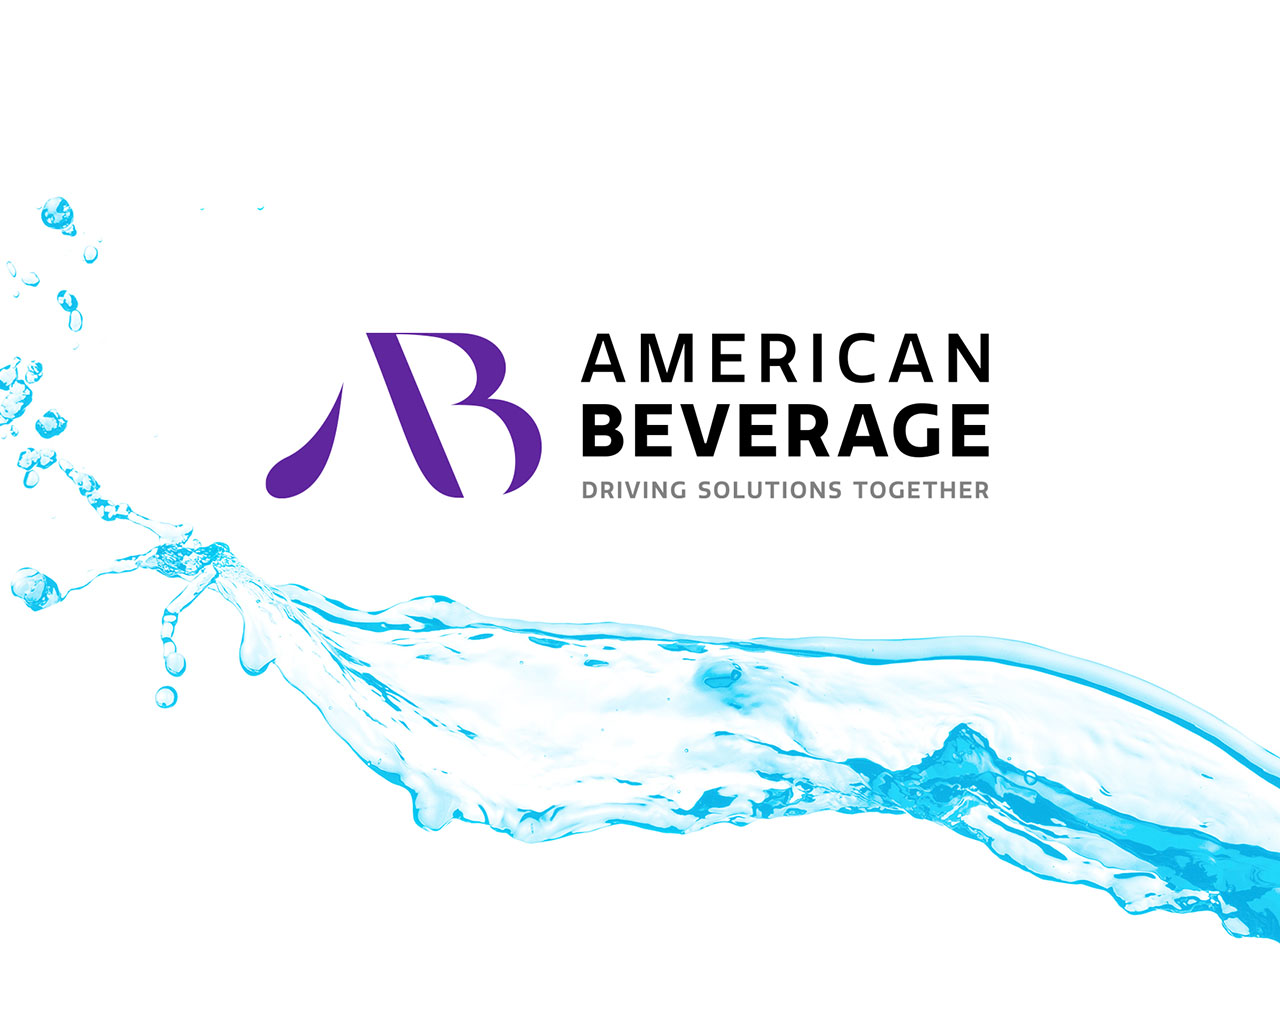 American Beverage logo with a blue splash of liquid in the background